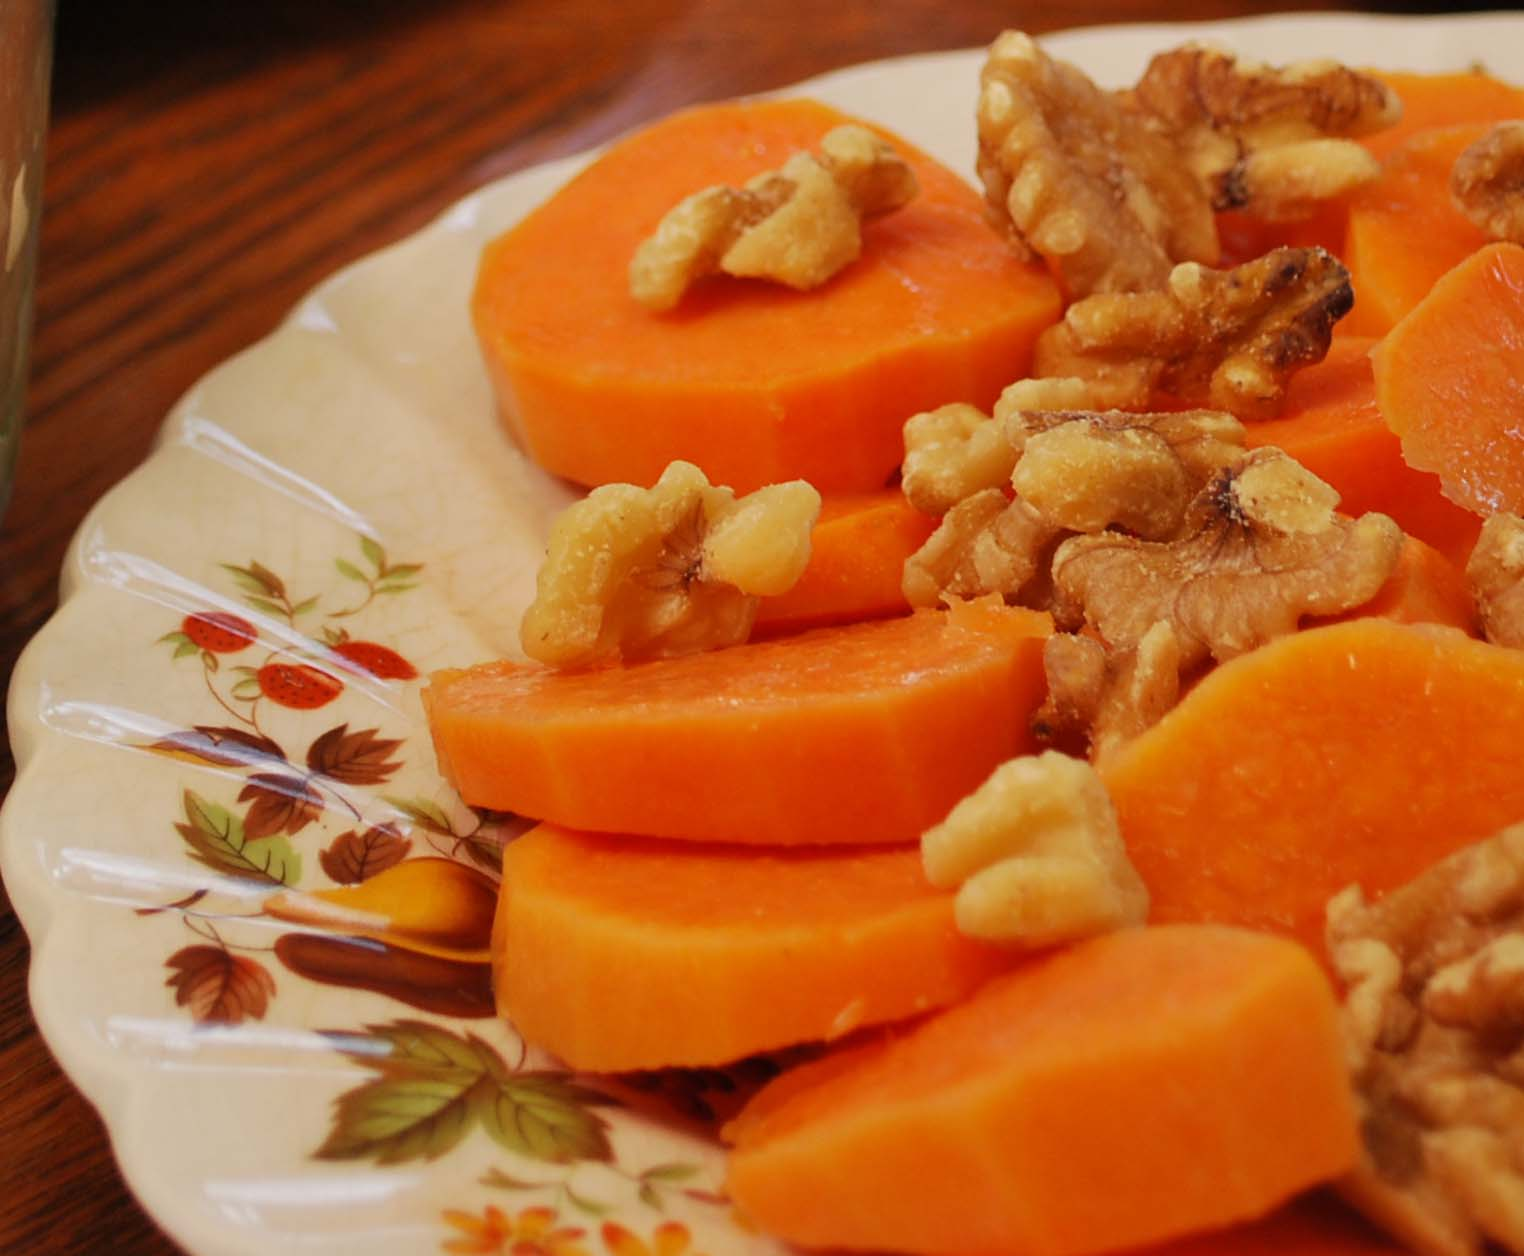 sweet potatoes with walnuts